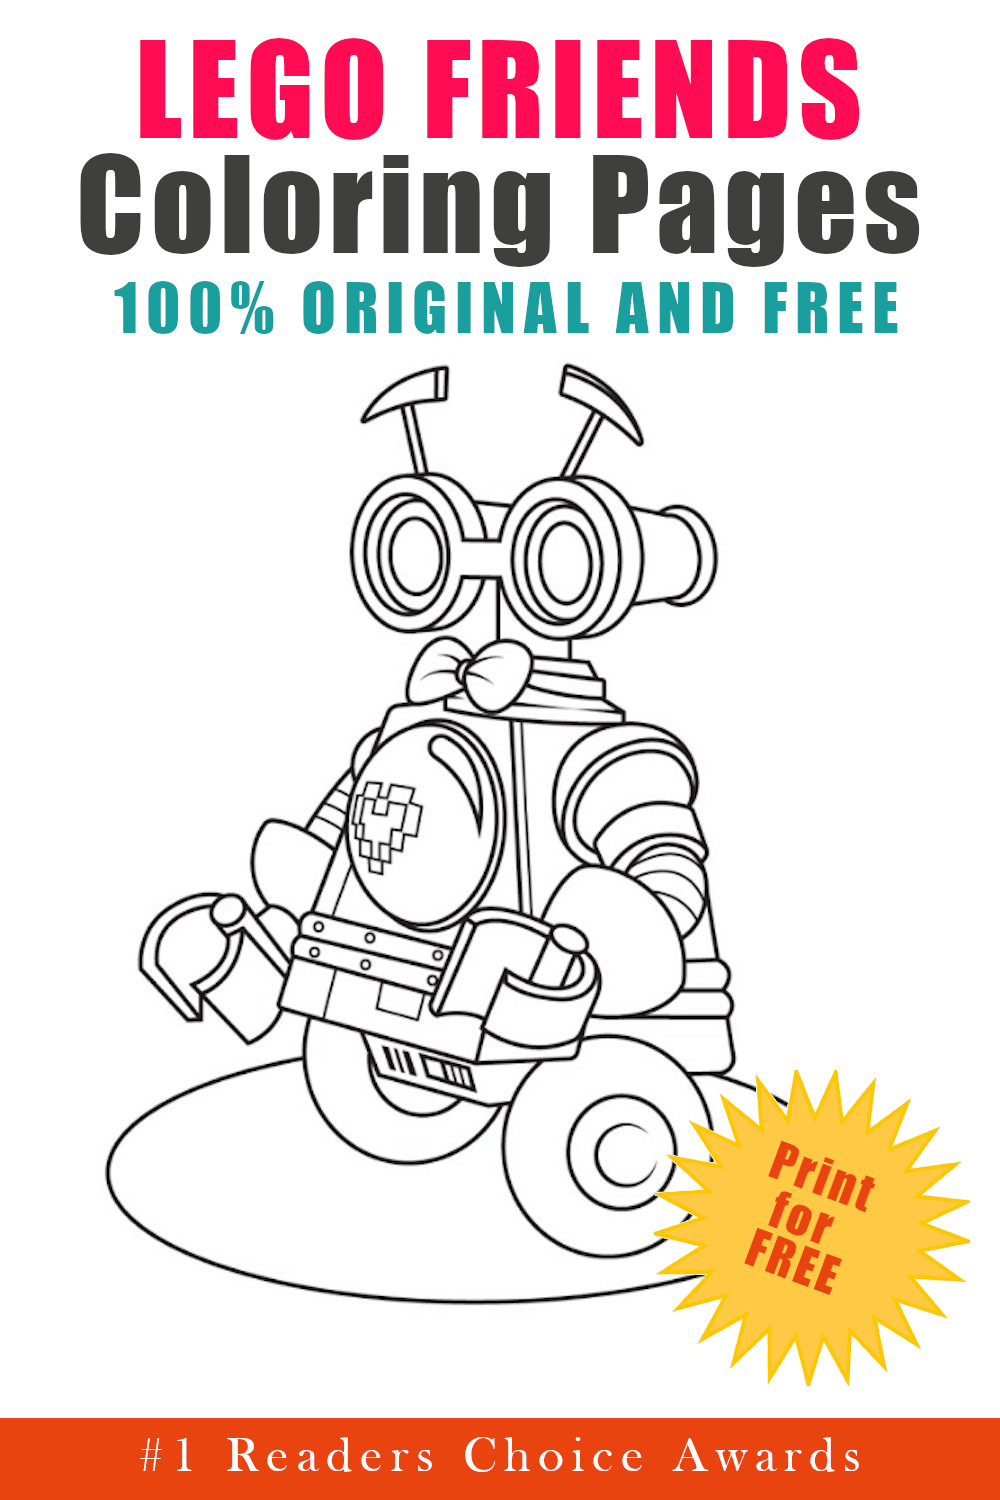 original and free lego friends coloring pages